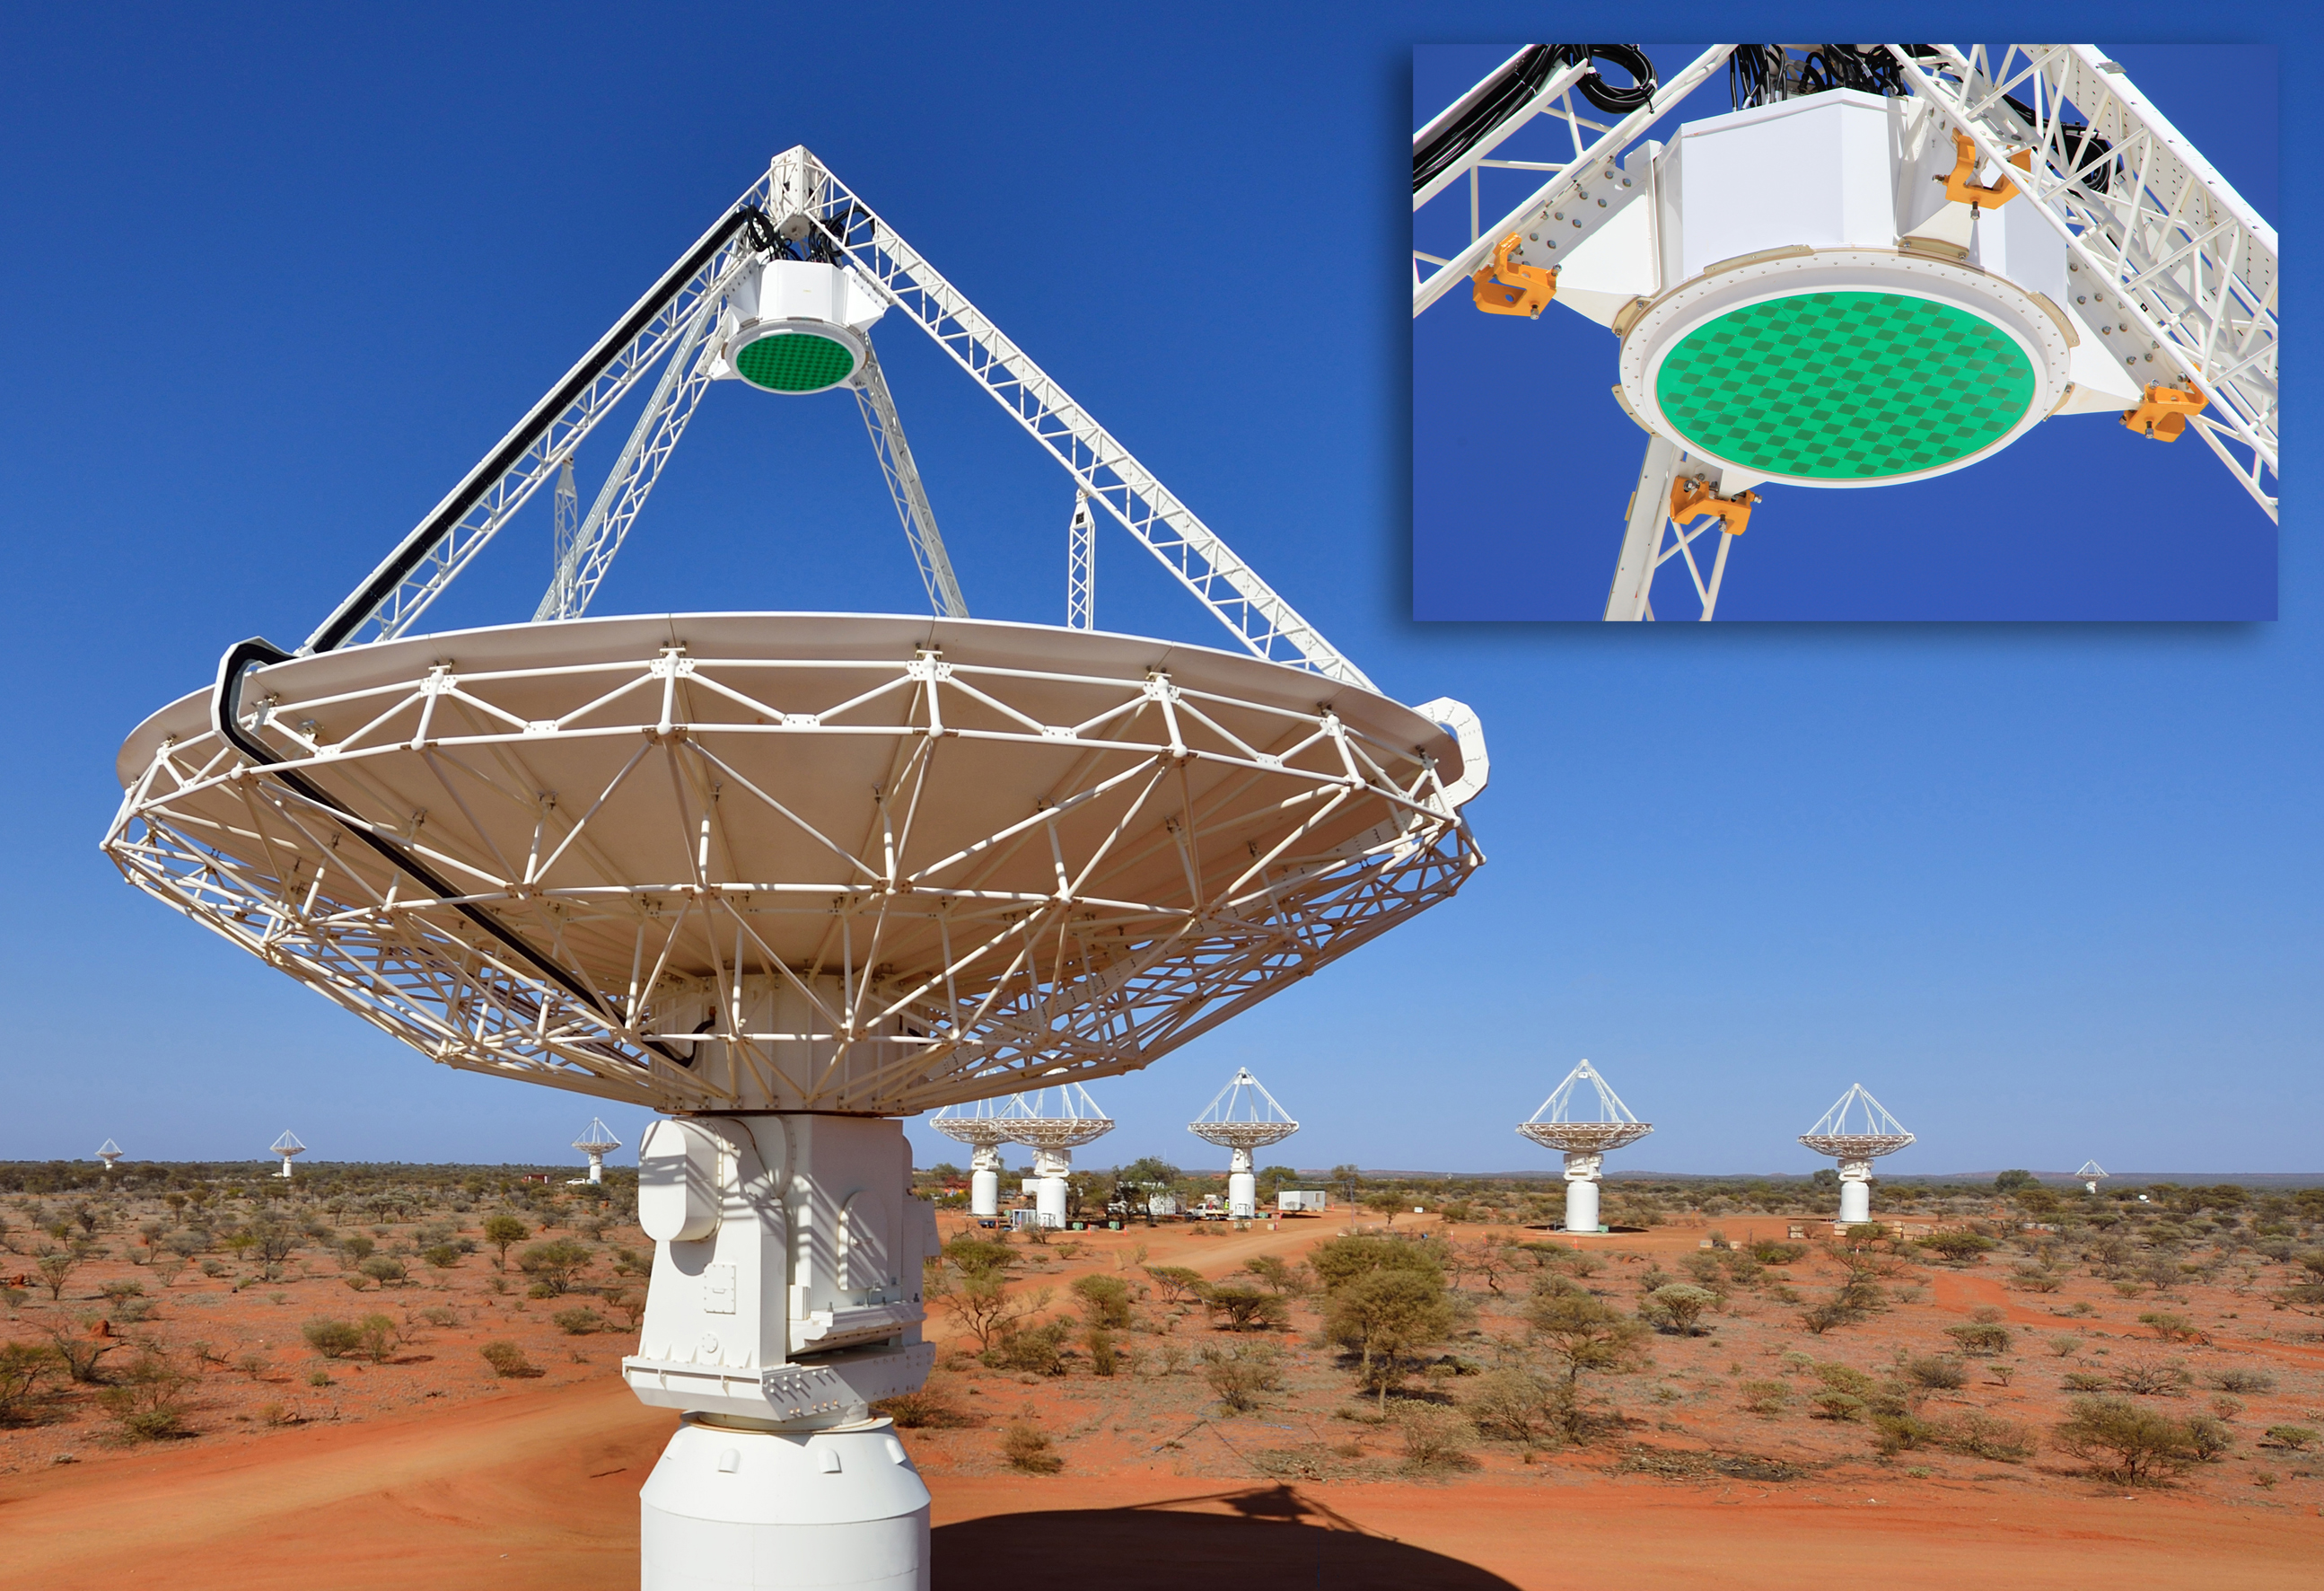 CSIRO's ASKAP radio telescope with its innovative phased array receiver technology.